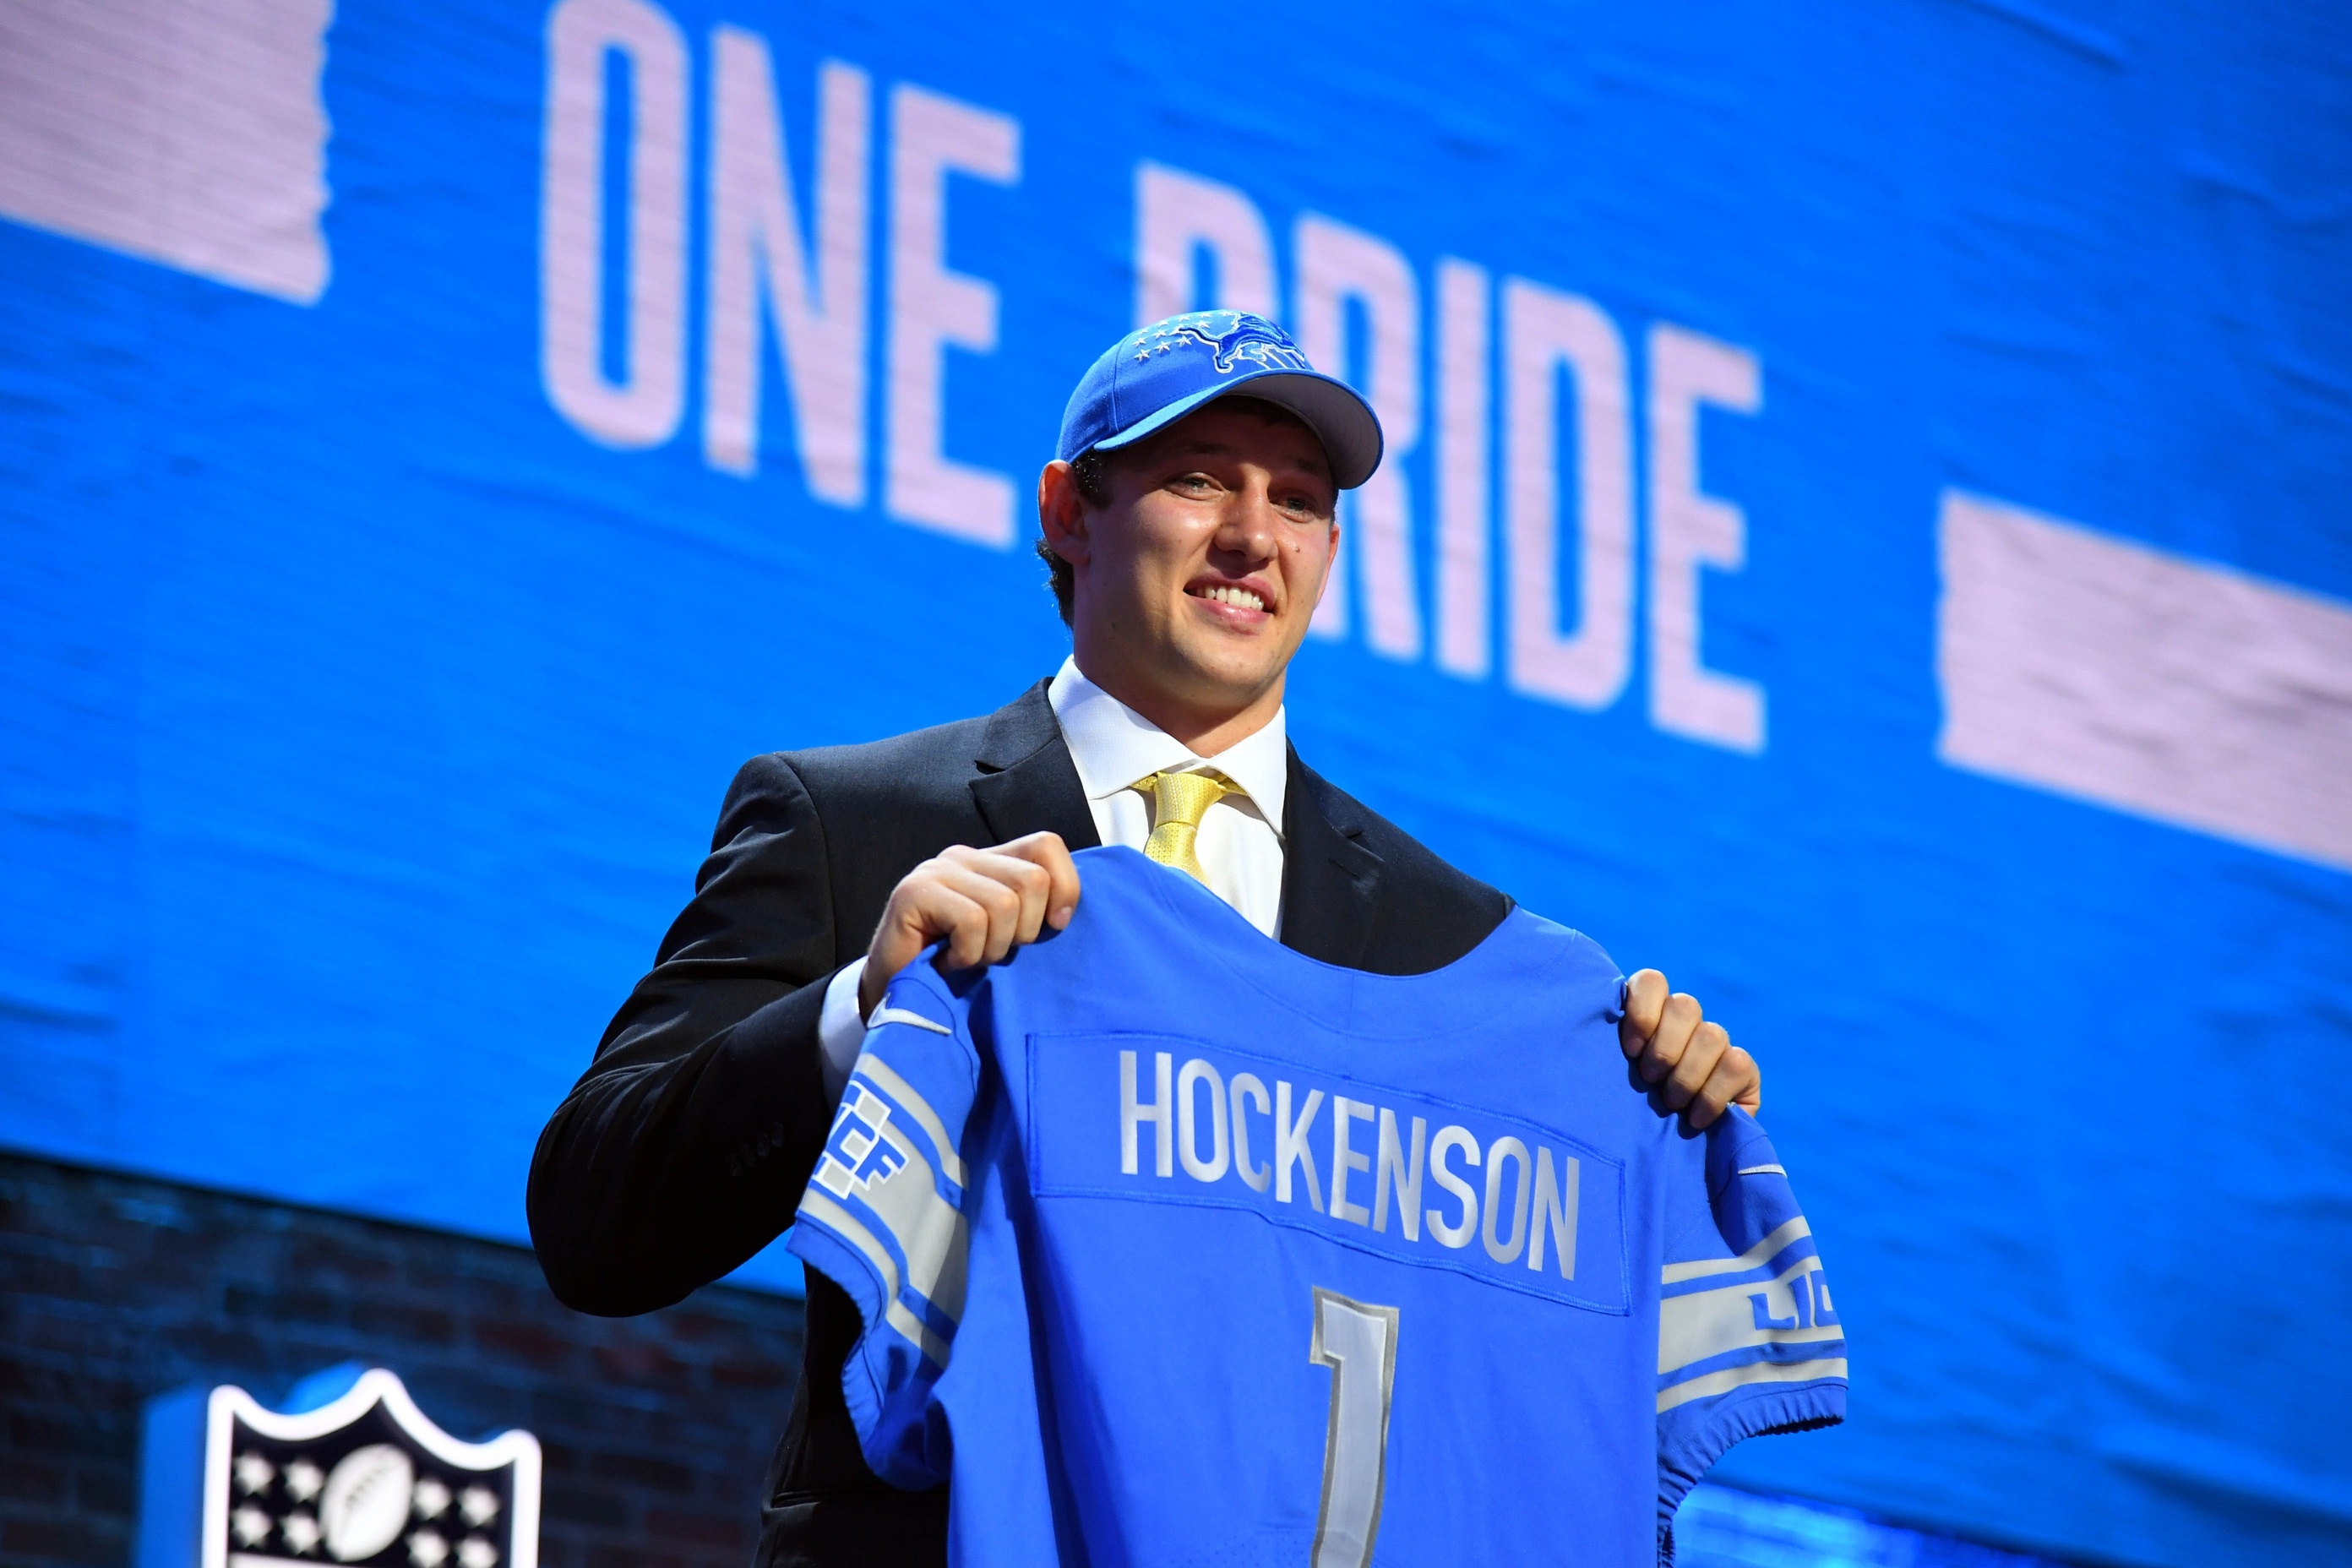 Lions are Currently Drafting 5th in 2020 NFL Draft